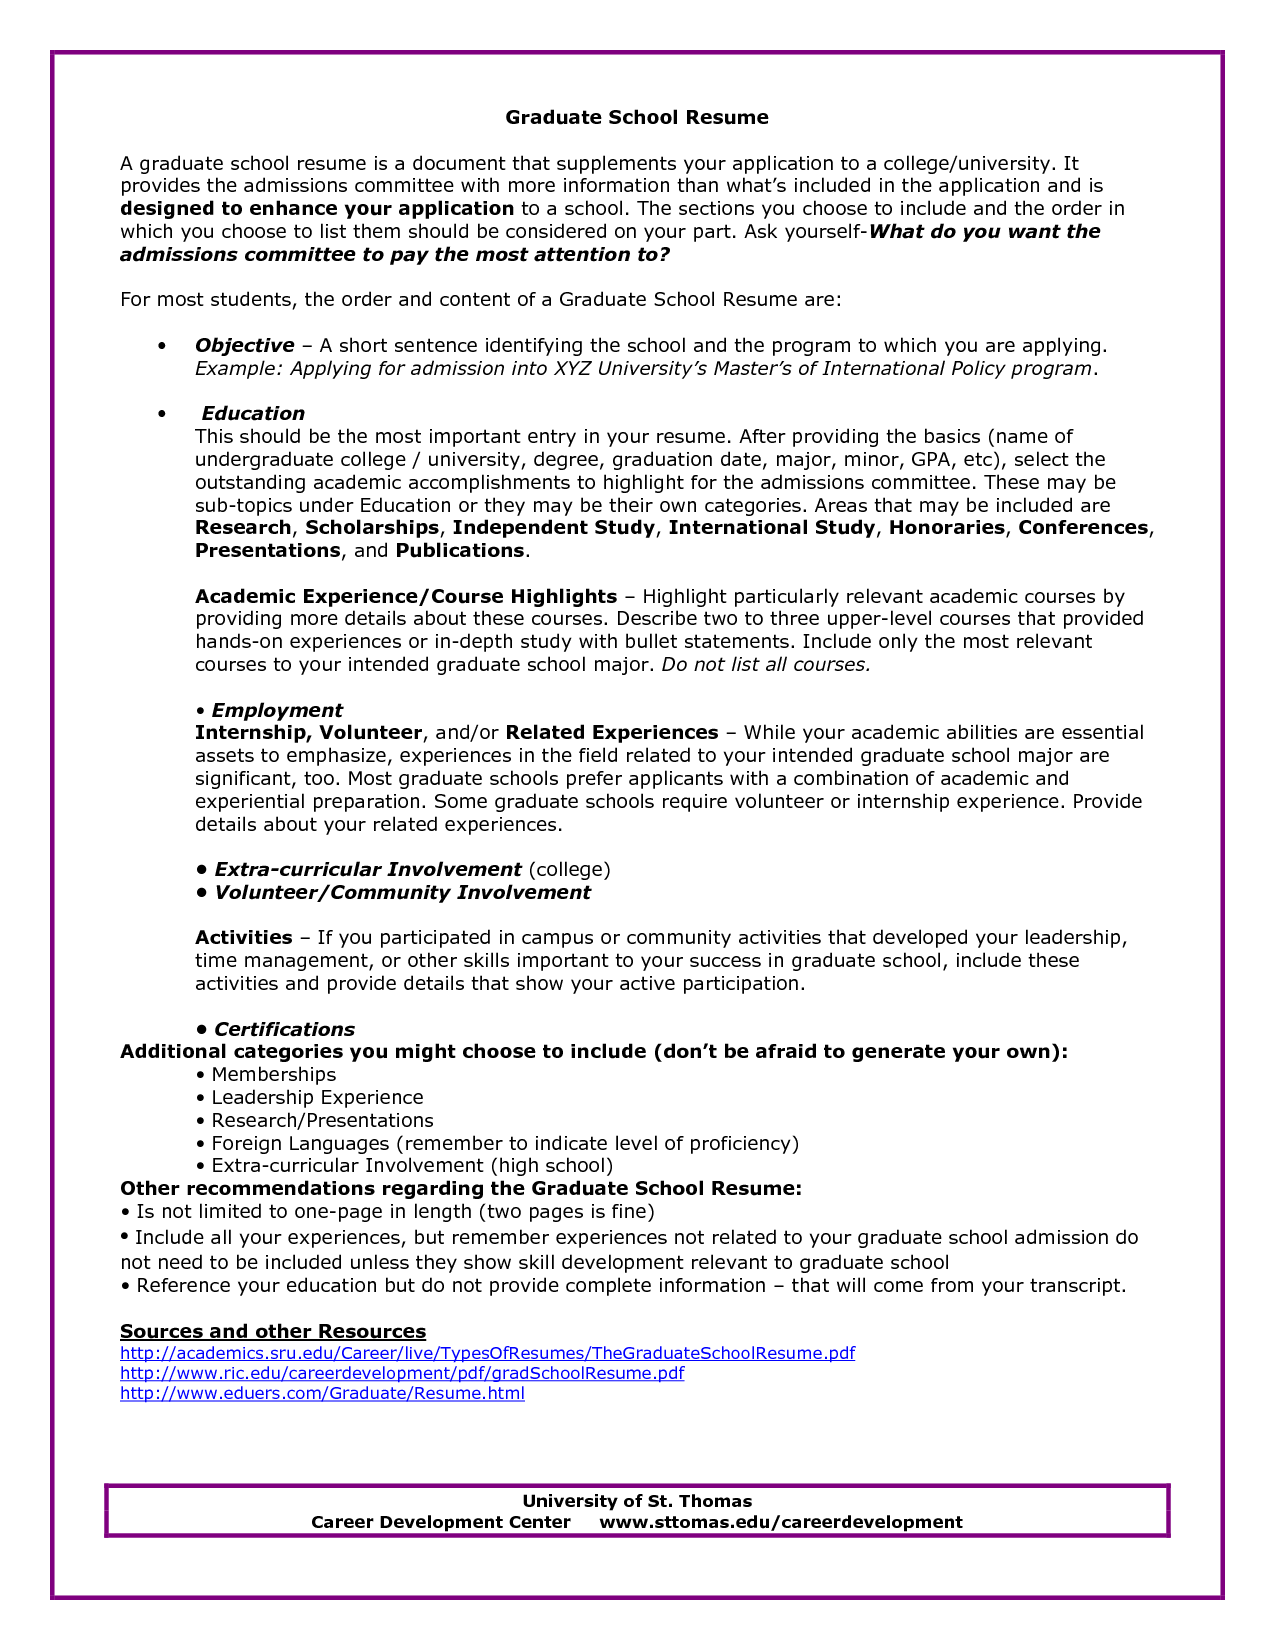 Resume College Graduate Graduate School Admissions Resume Sample  Httpwwwresumecareer